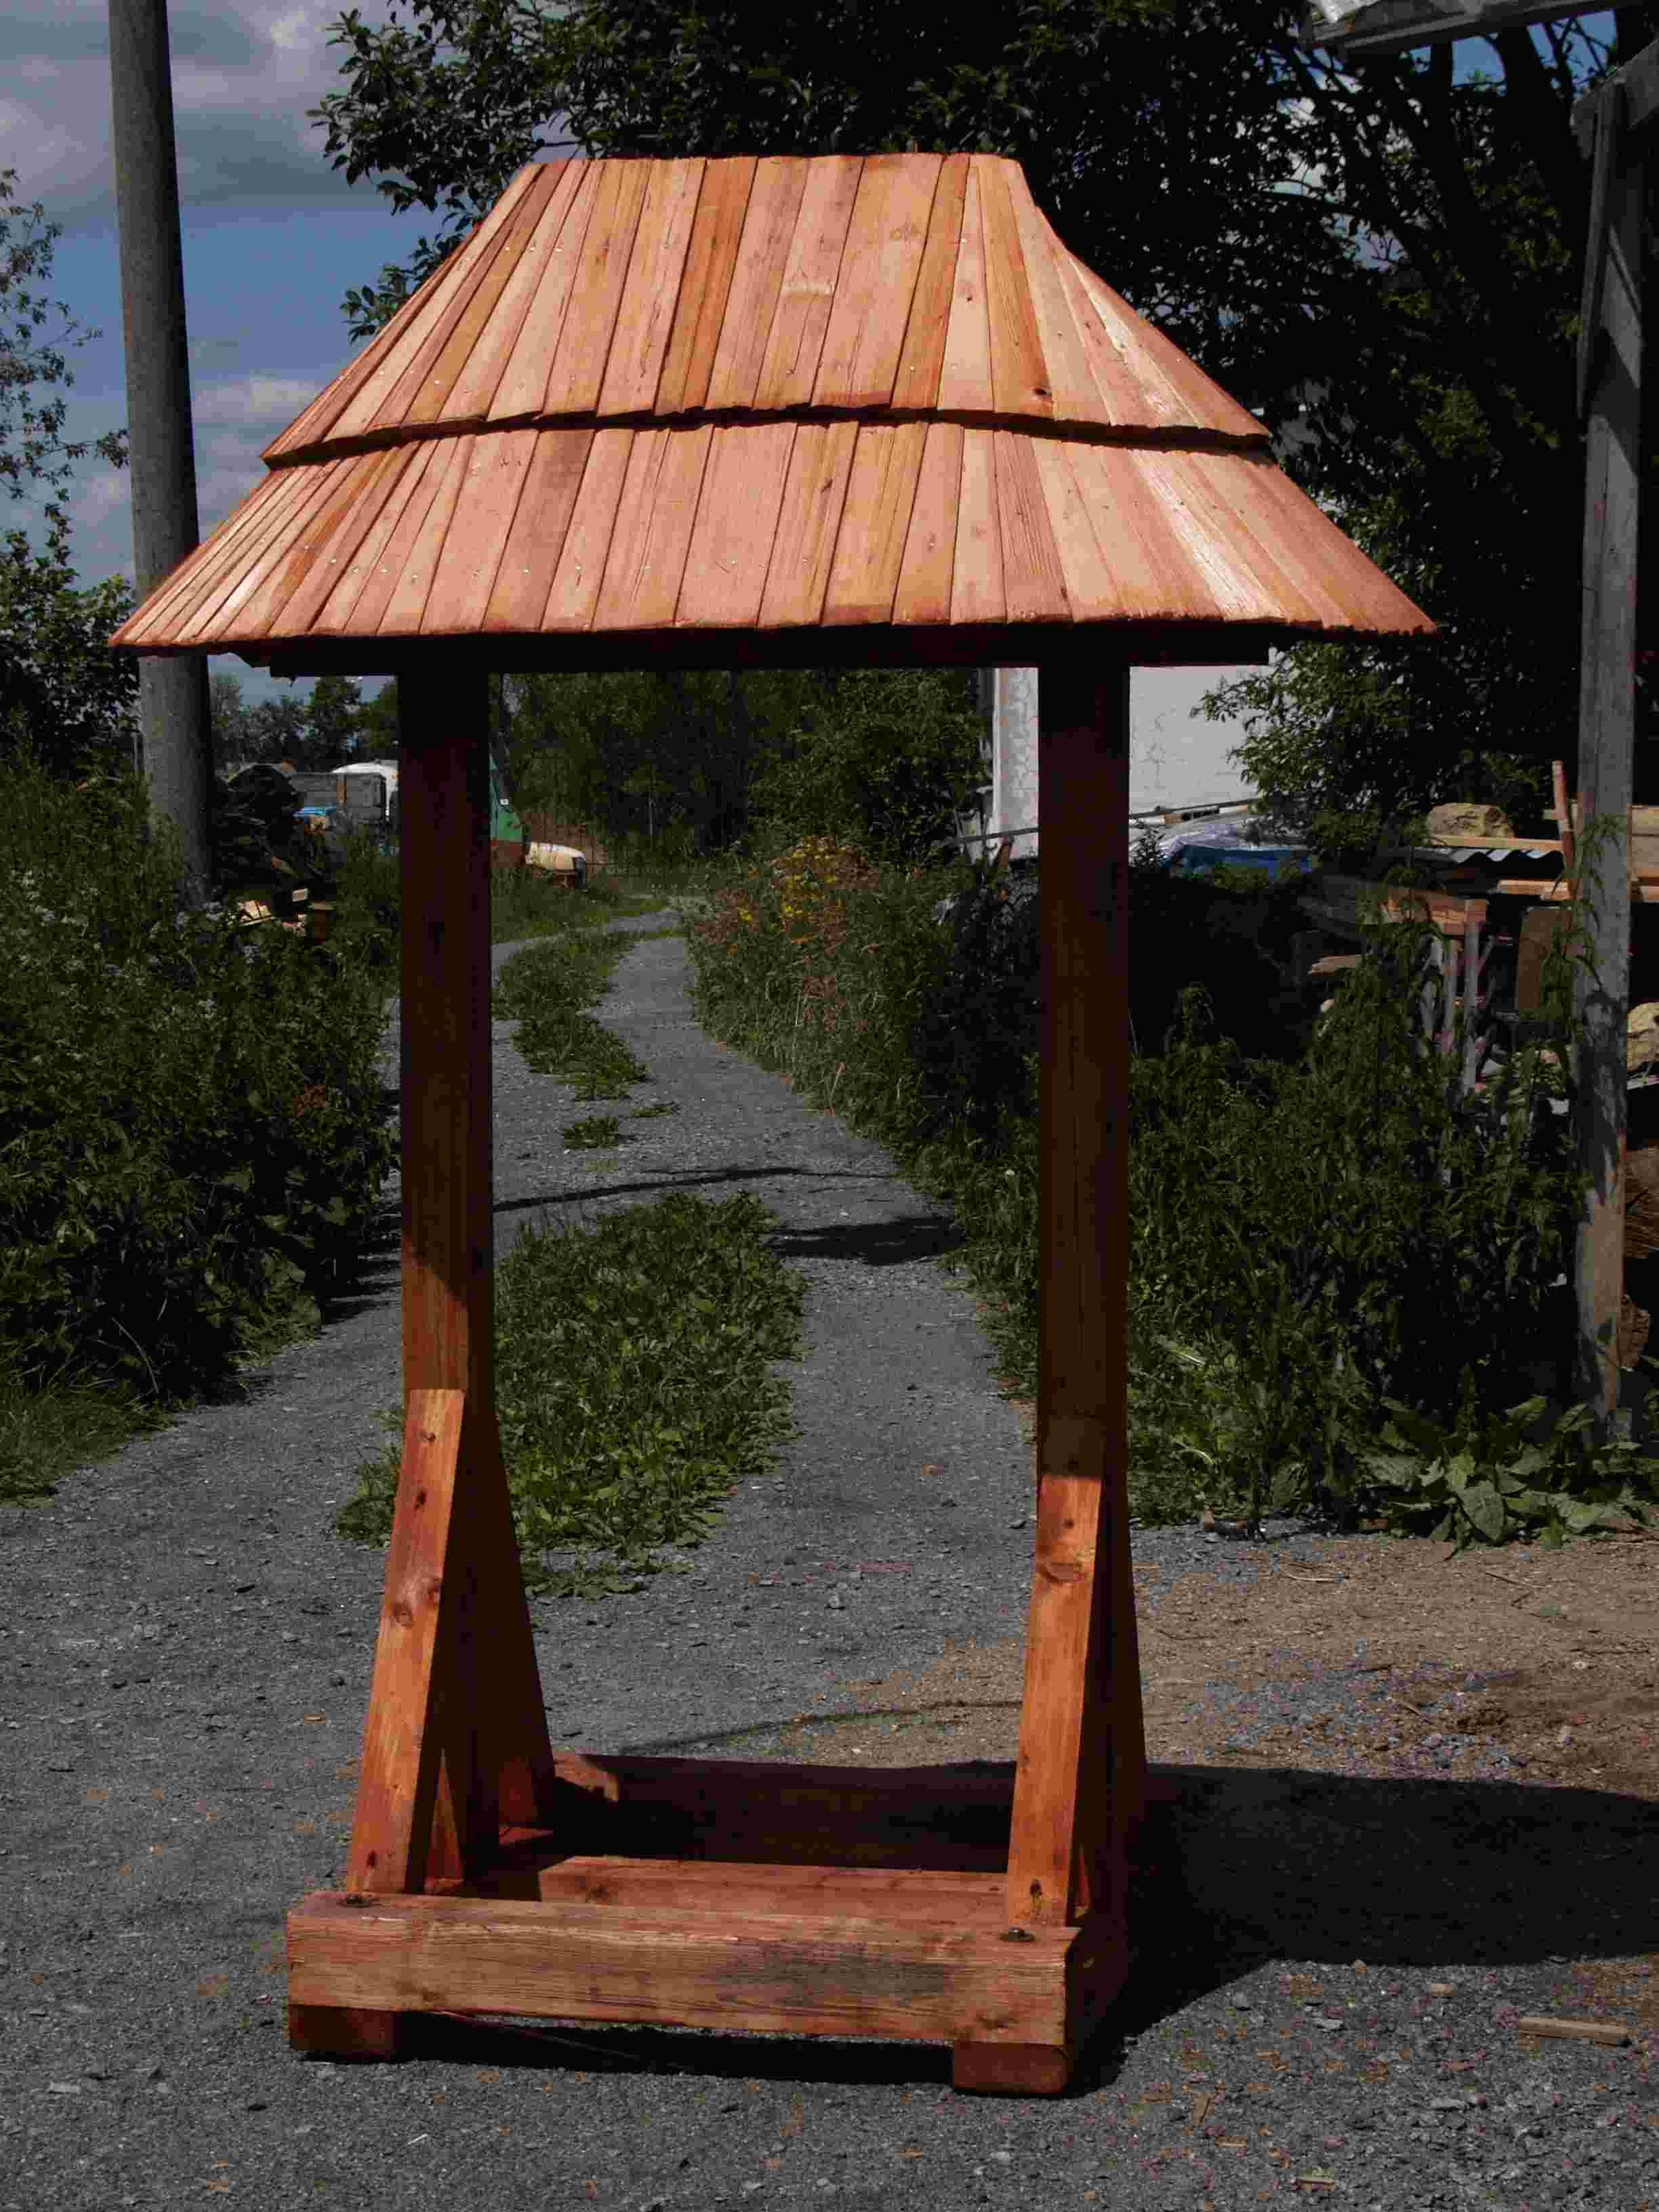 drdlik-production of a signpost with a shingle roof, Wallachian shingles